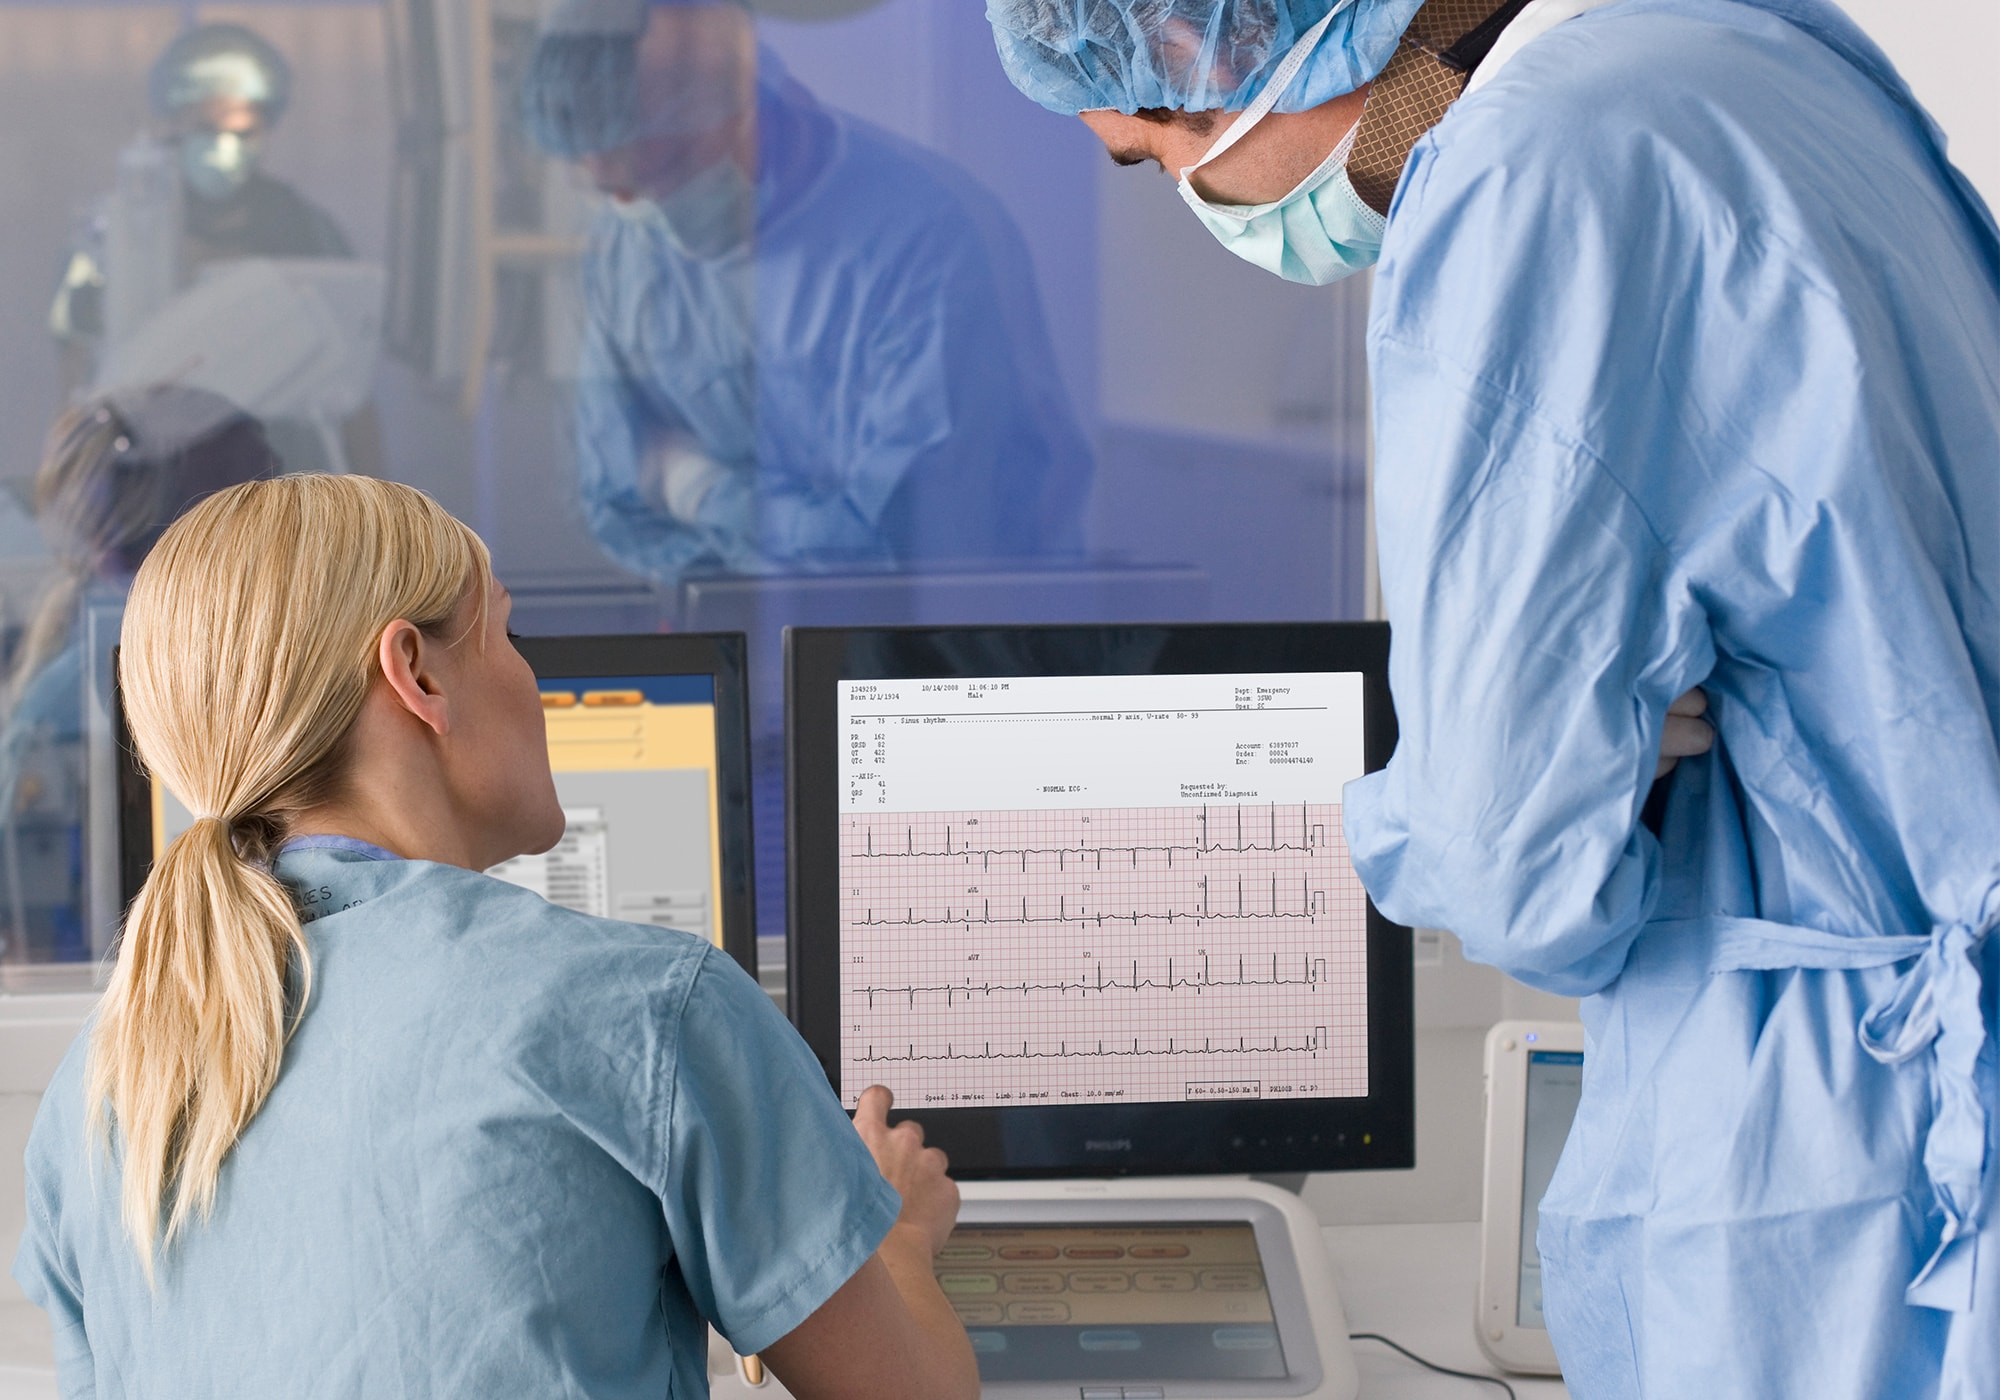 clinicians monitoring patients' cardiograph